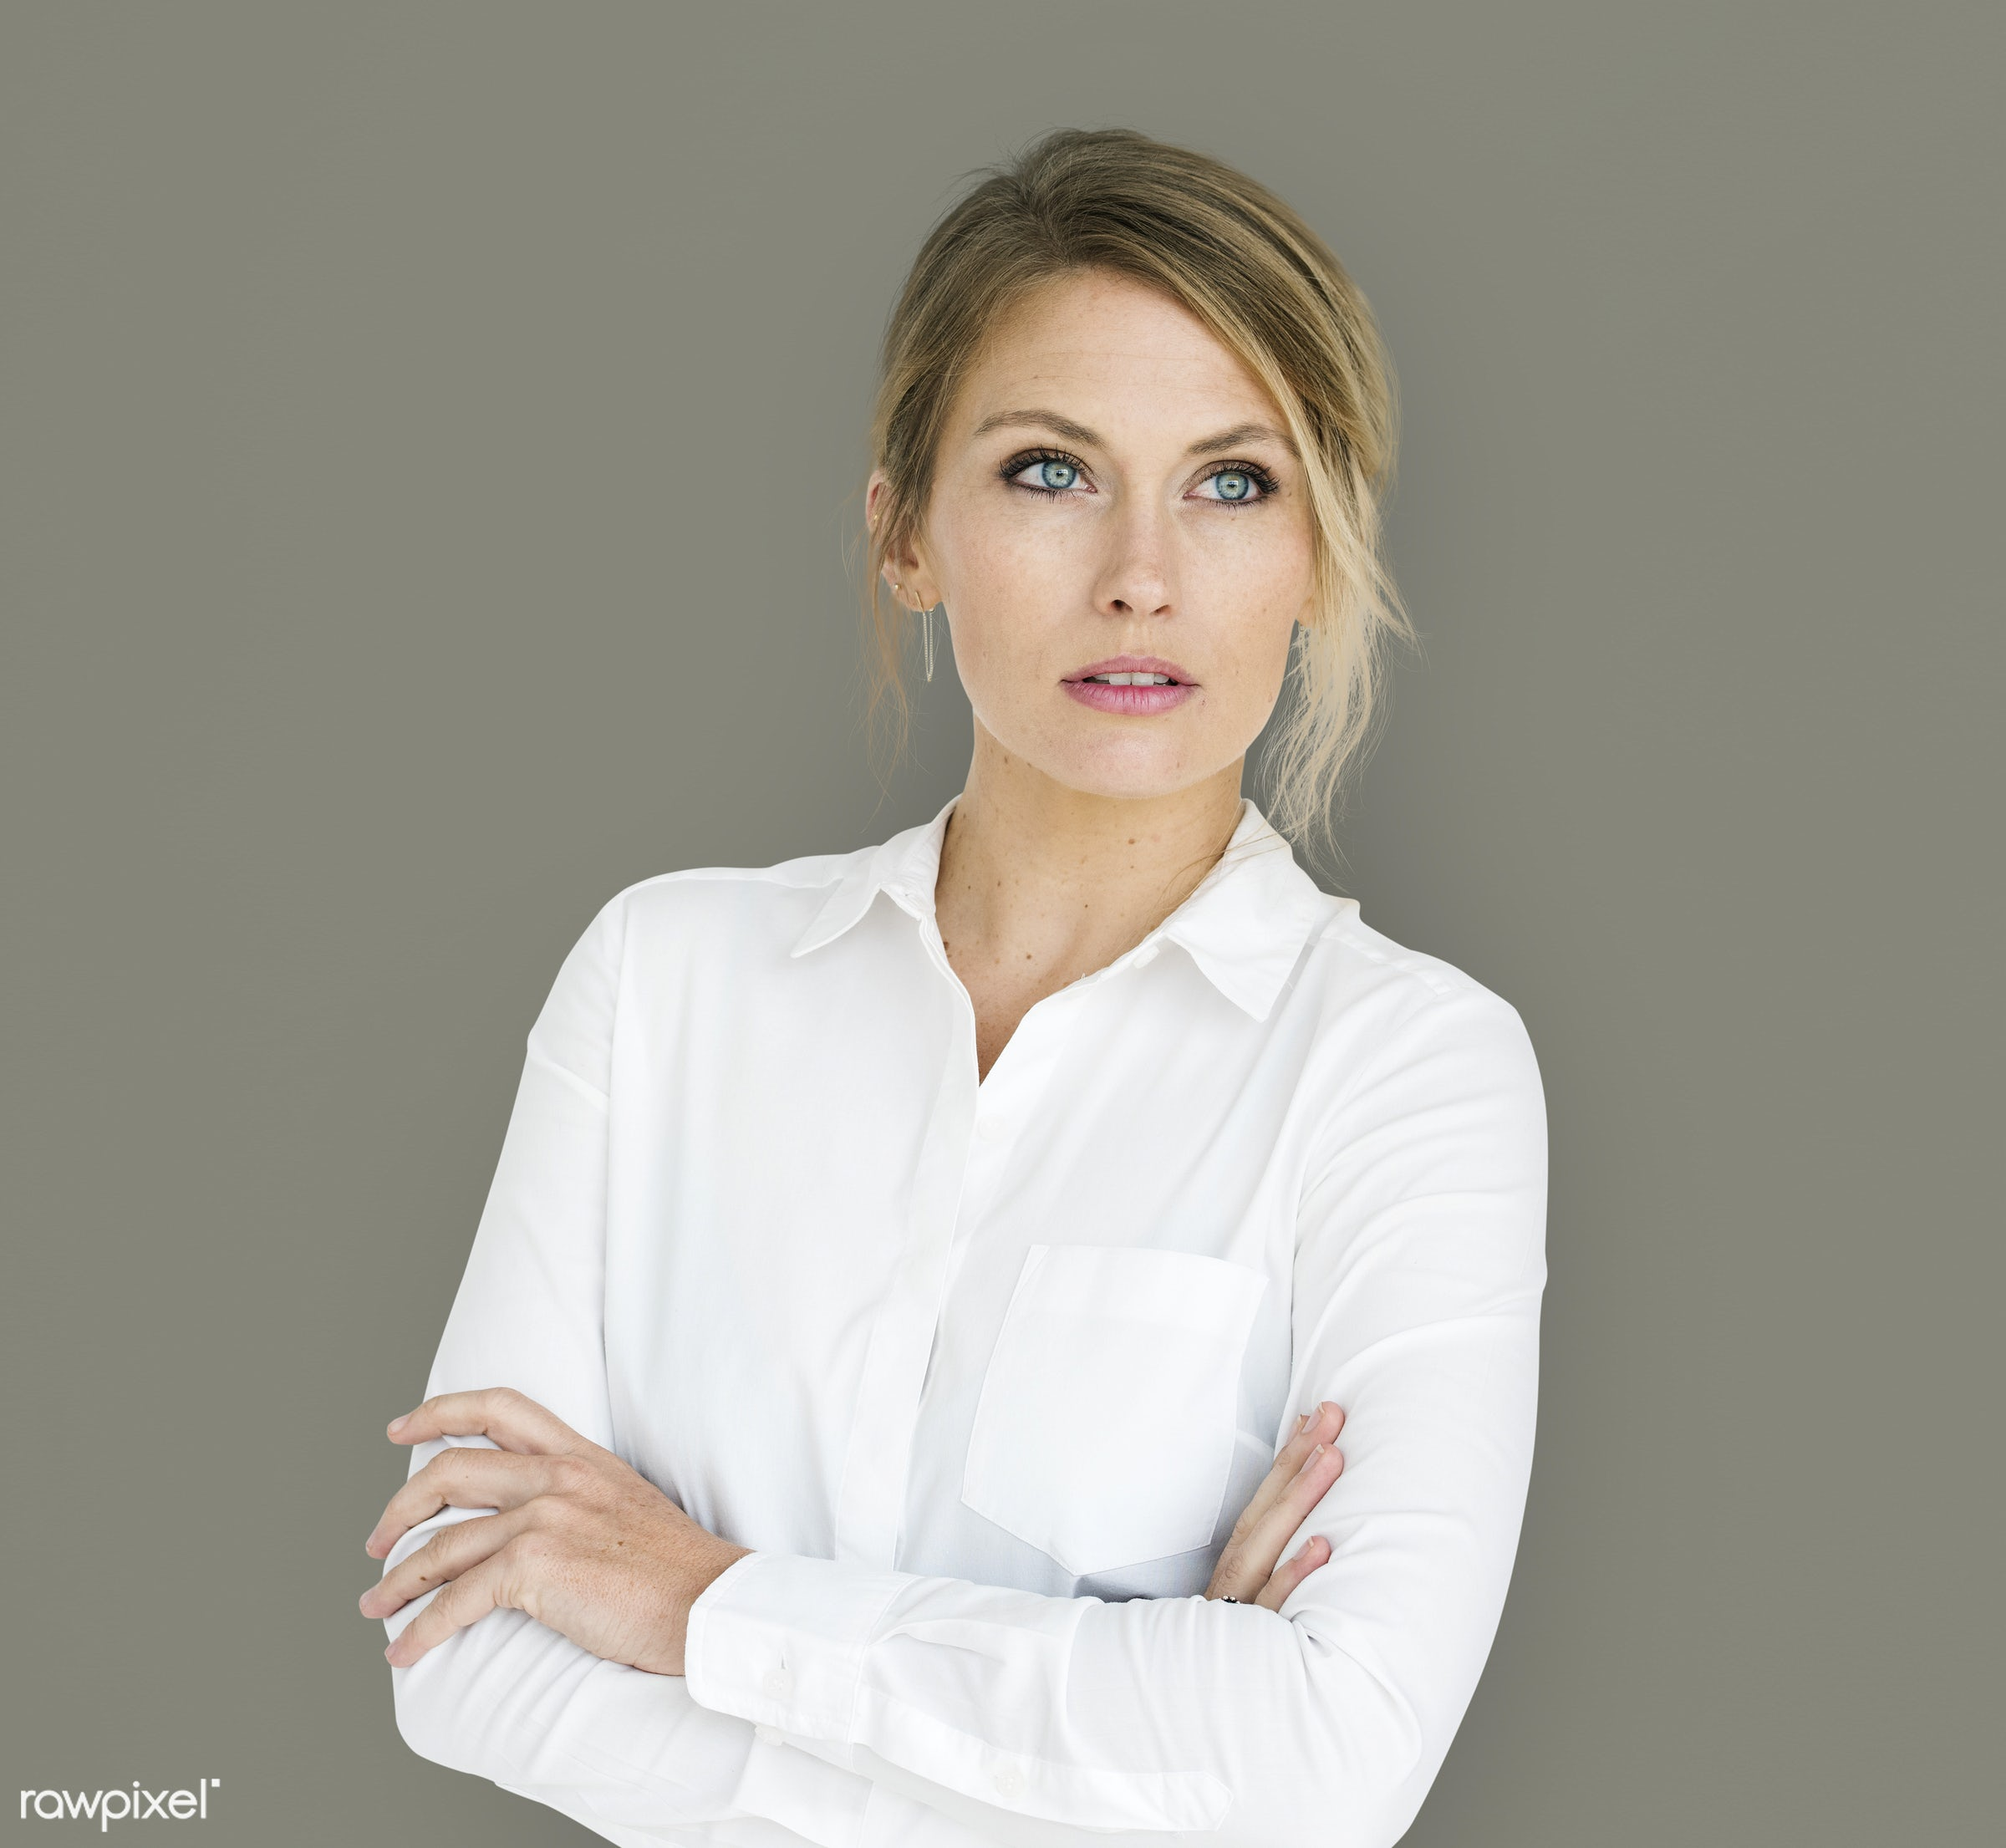 adult, background, business, business dressing, business wear, business woman, cool, expression, female, formal, formal...